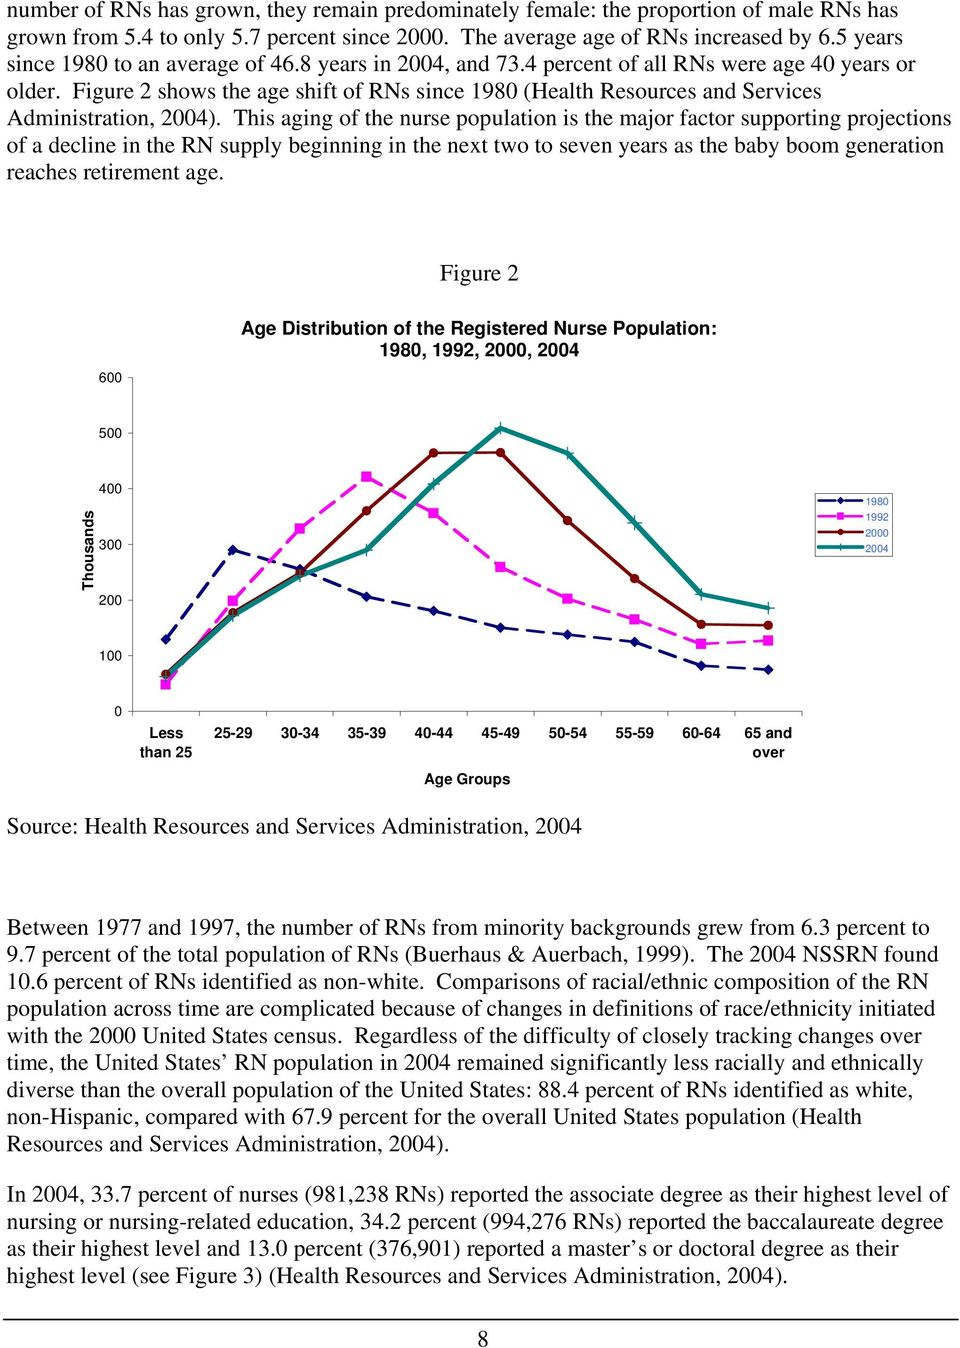 Figure 2 shows the age shift of RNs since 1980 (Health Resources and Services Administration, 2004).